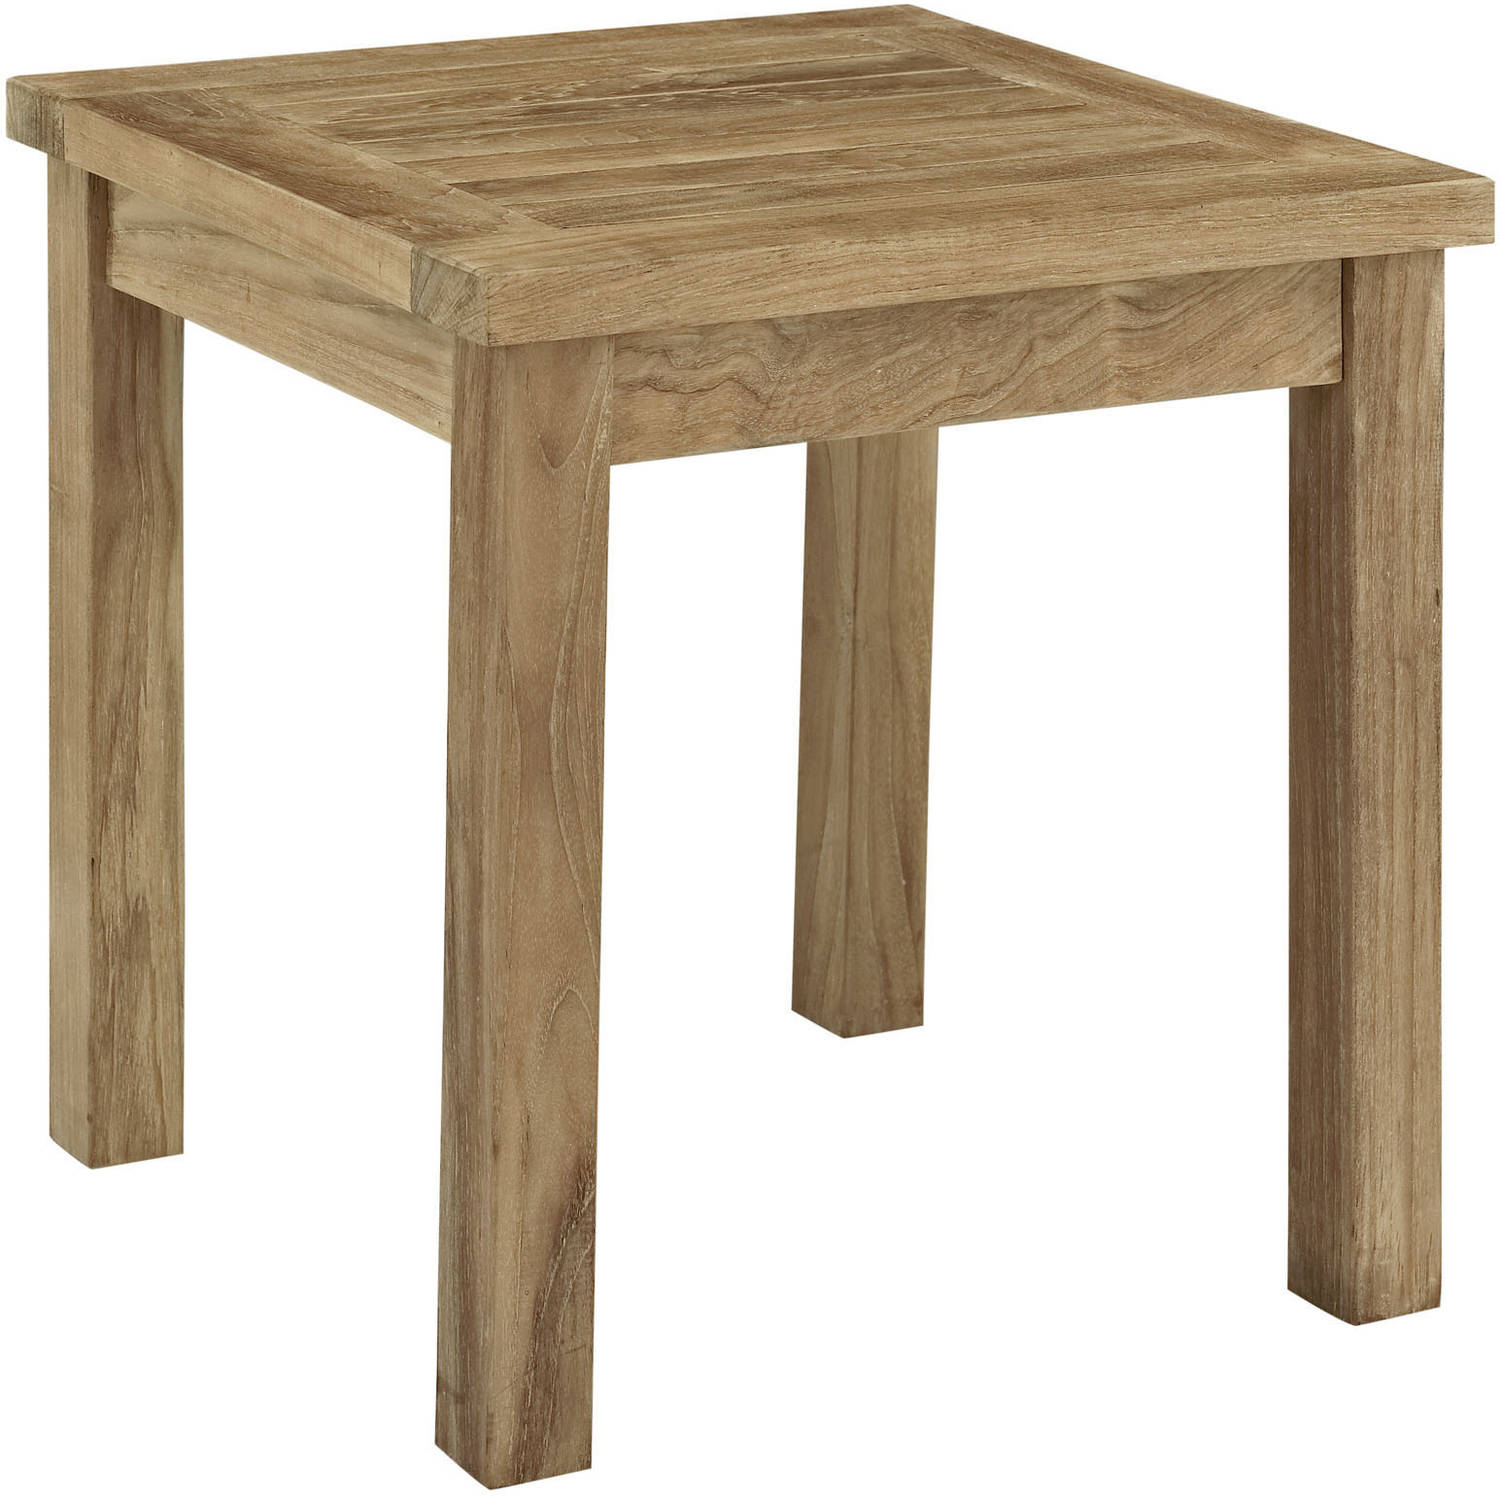 Modway Marina Outdoor Patio Teak Side Table, Natural by Modway